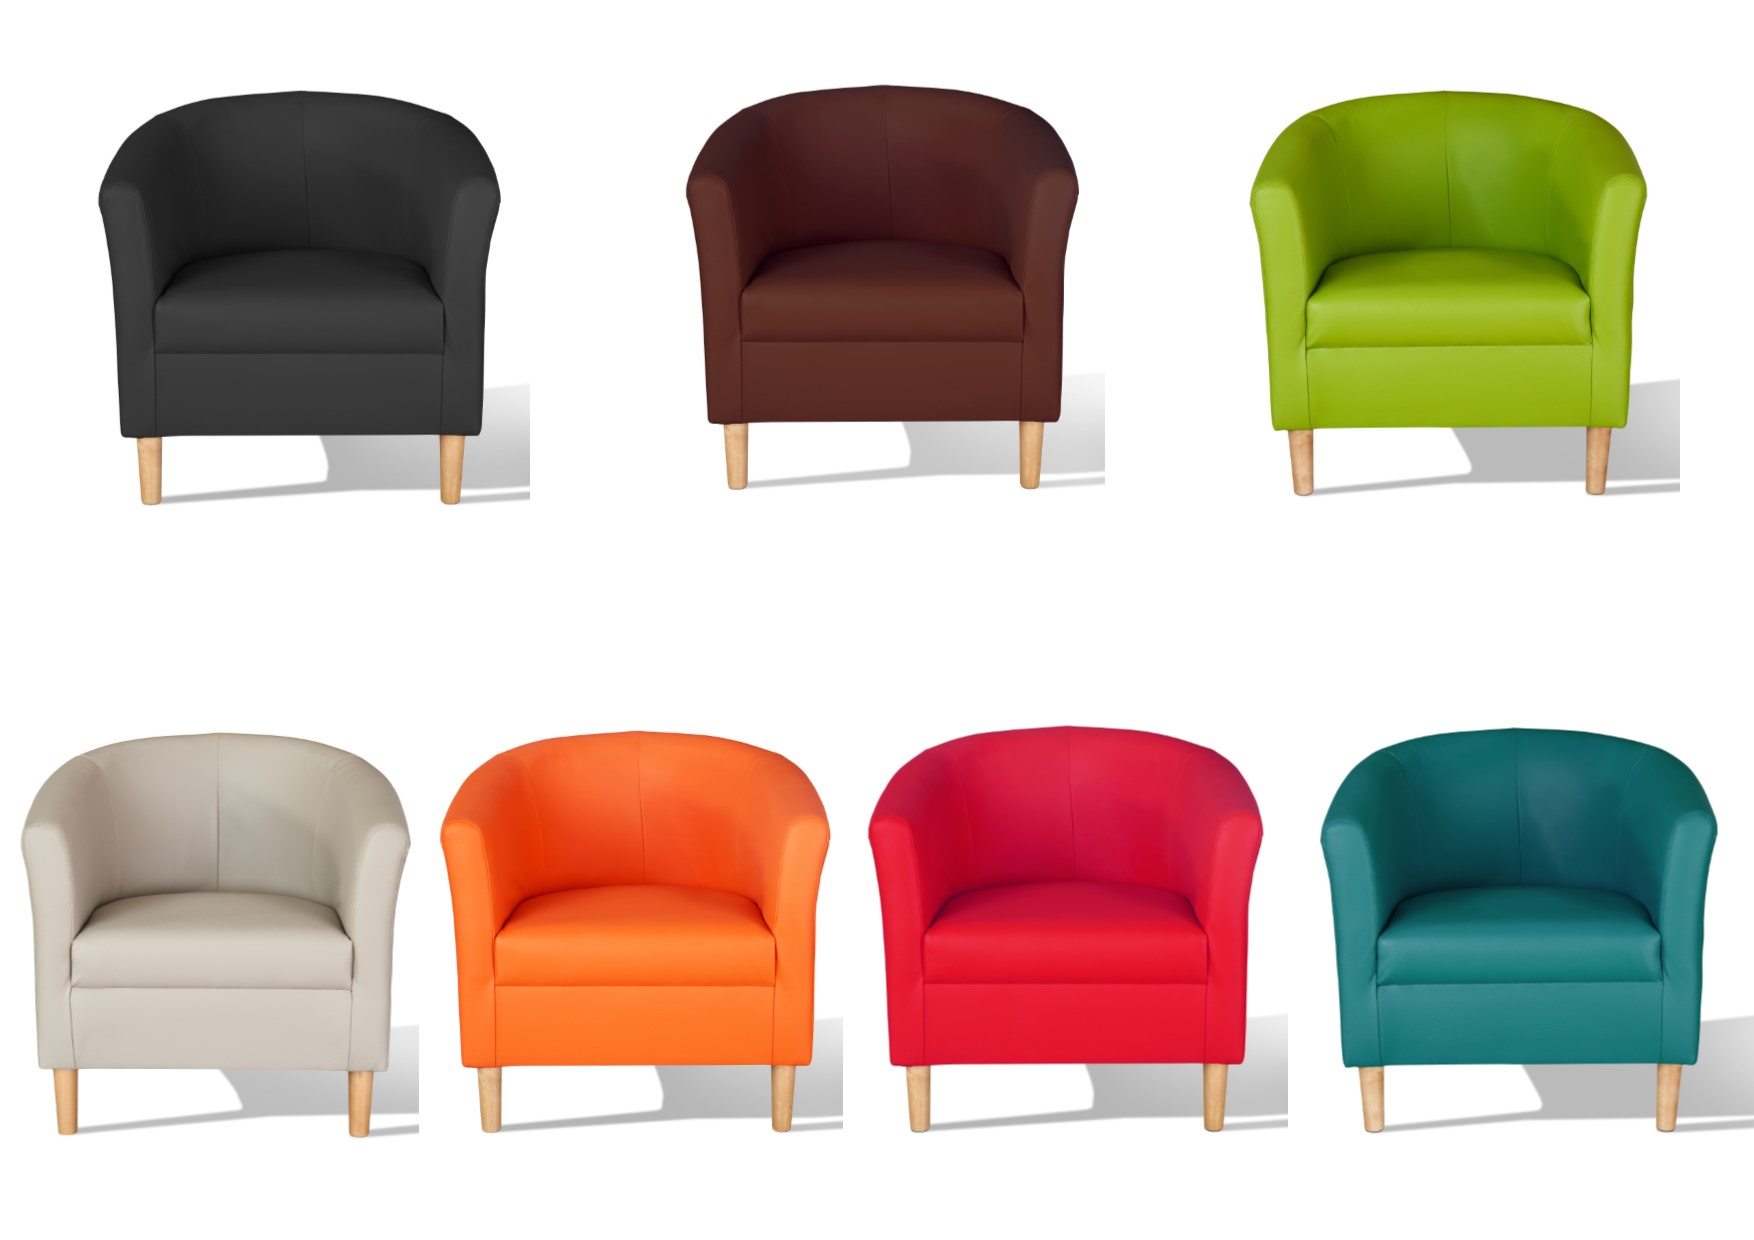 Hamony Faux Leather Tub Chairs - Black, Mocha, Chestnut, Red, Teal ...